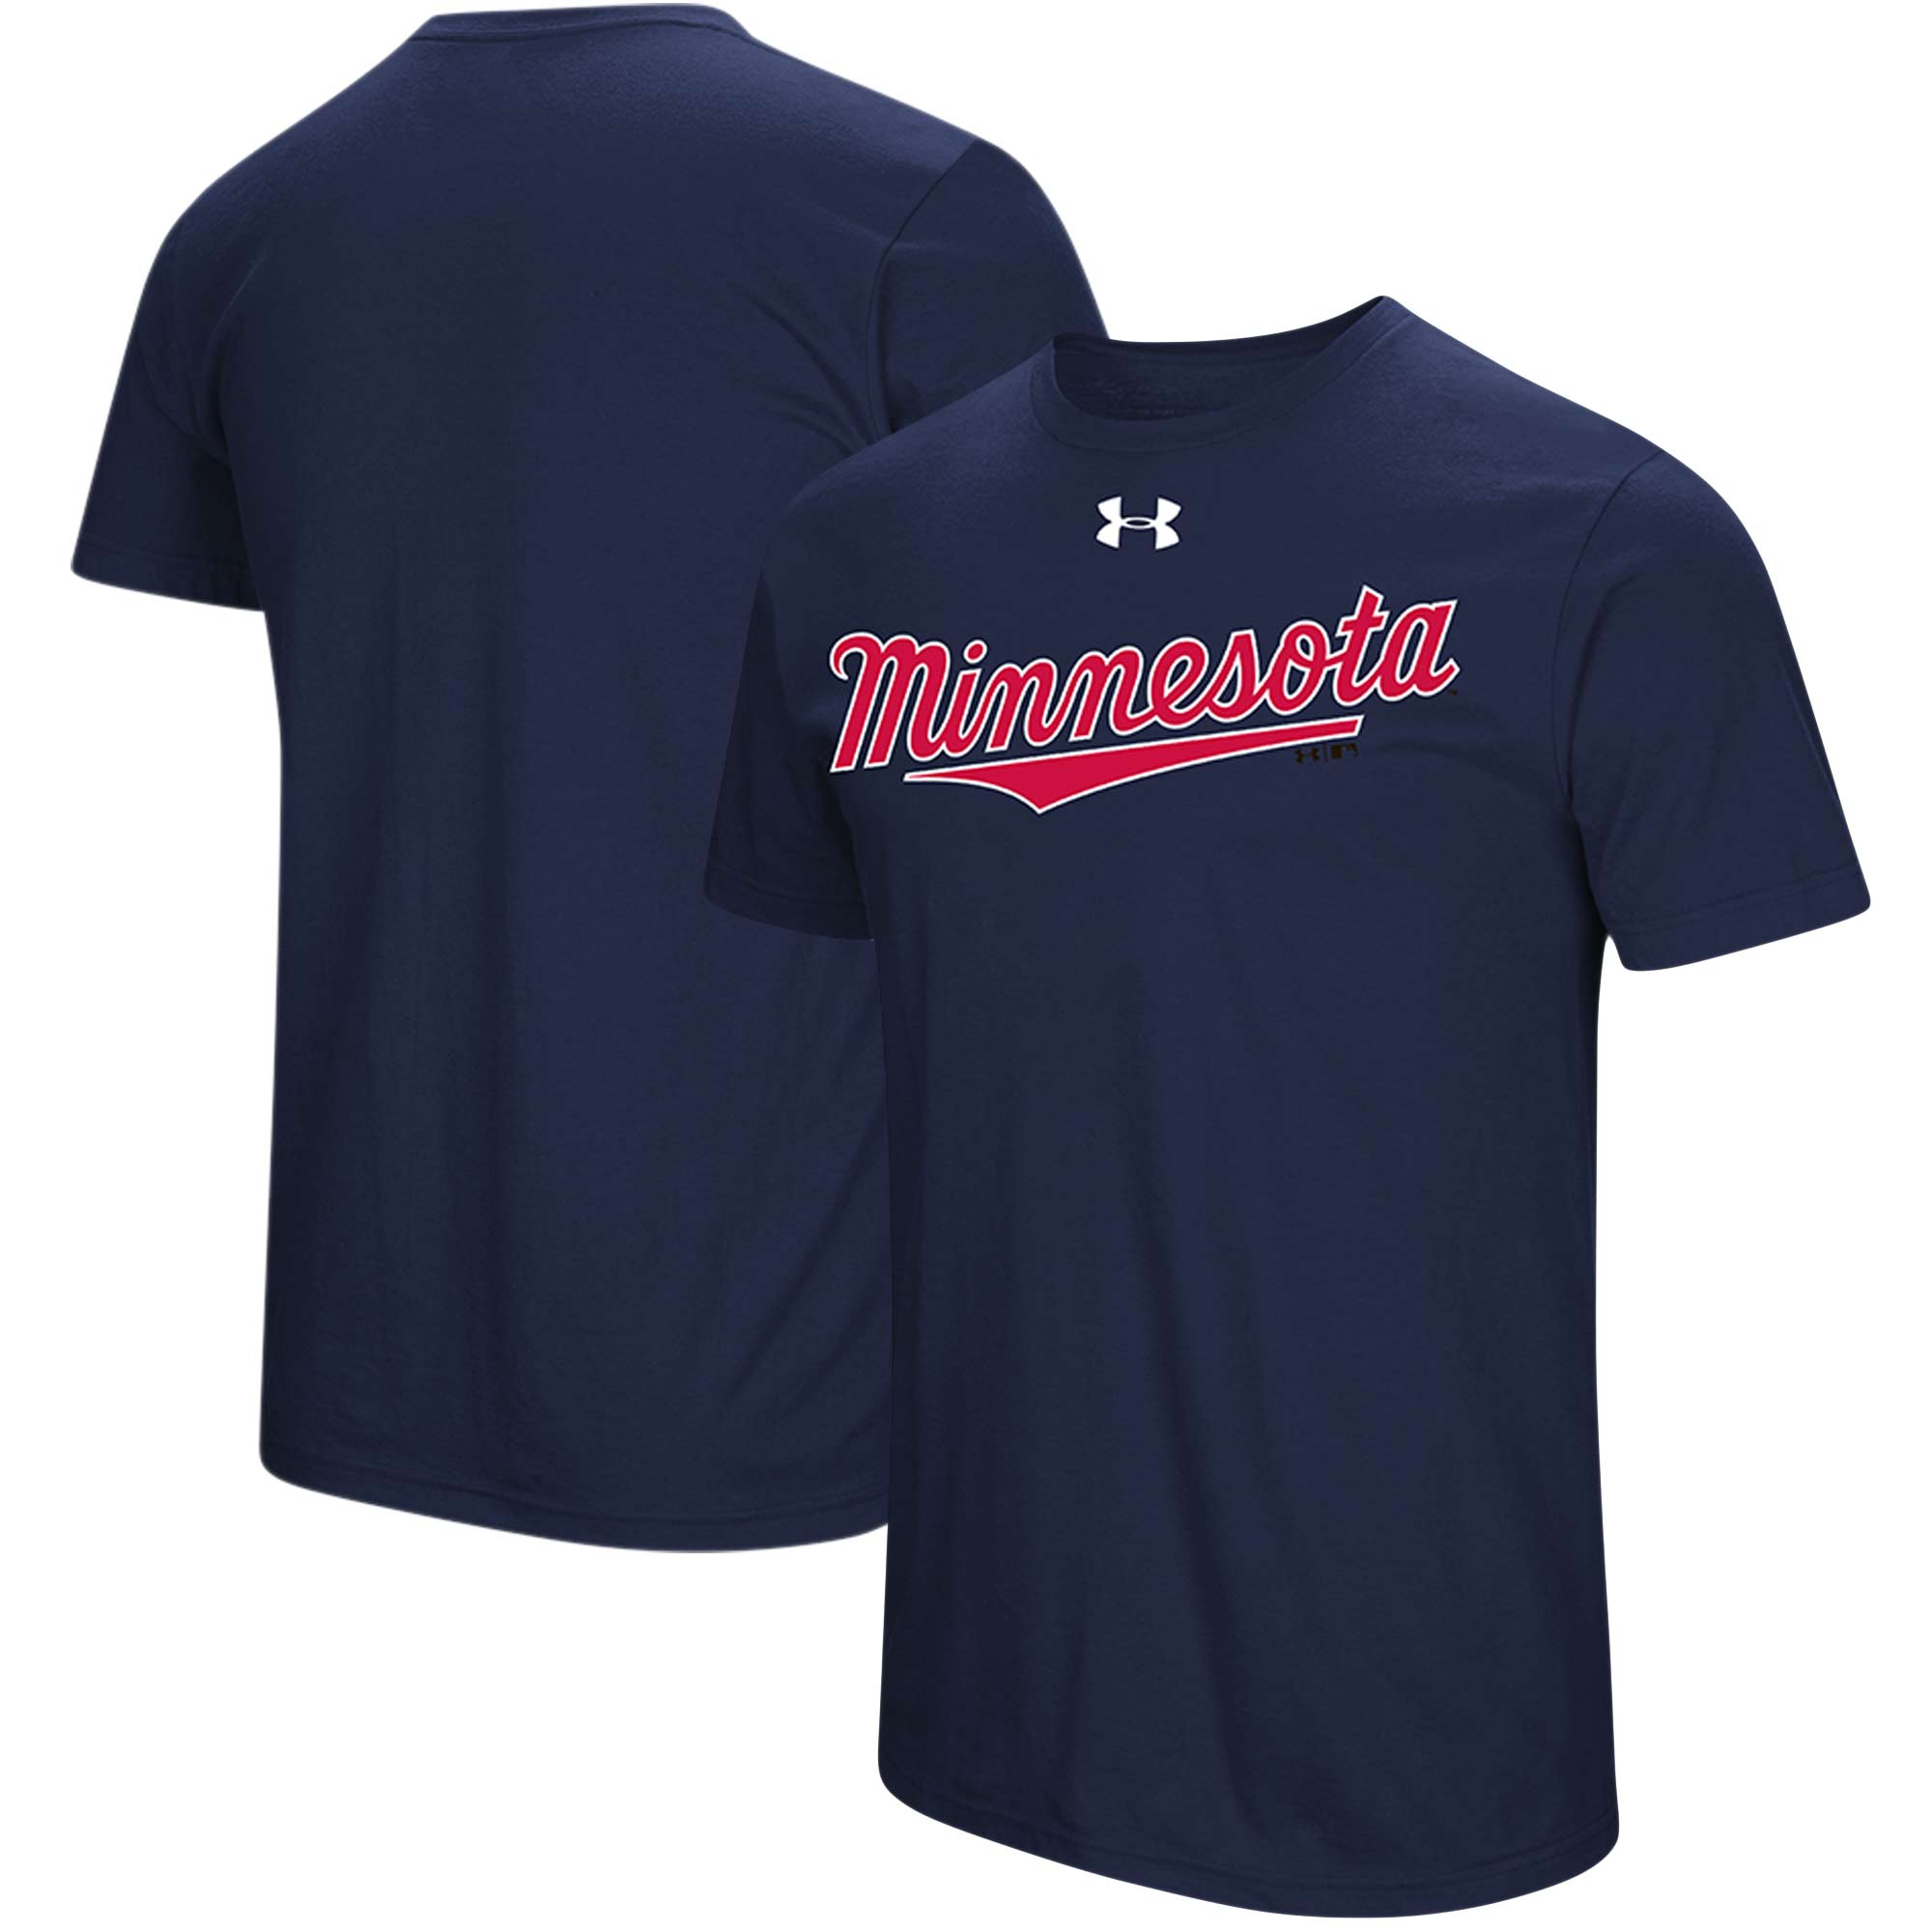 Minnesota Twins Under Armour Passion Road Team Font T-Shirt - Navy